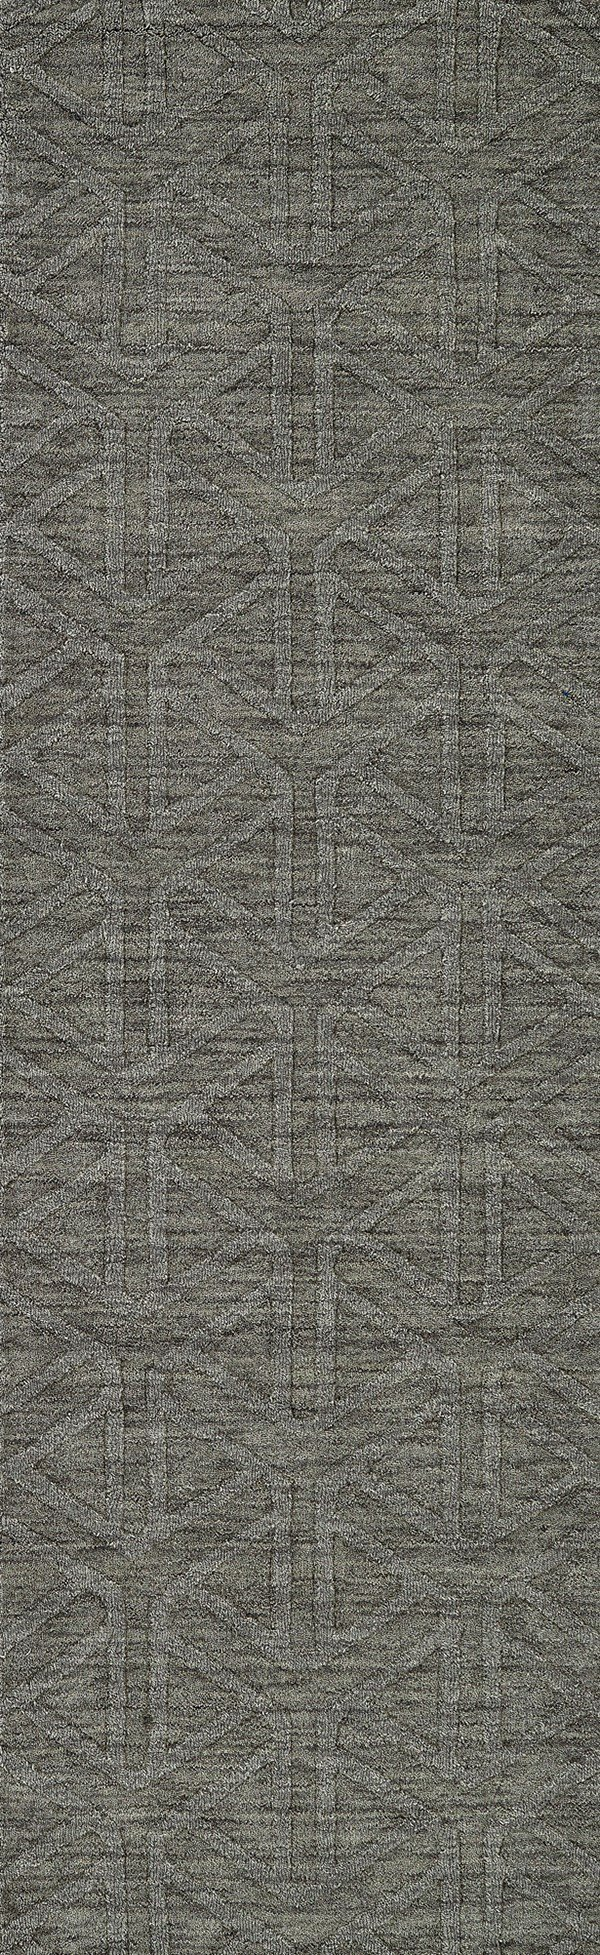 Charcoal (38) Textured Solid Area Rug